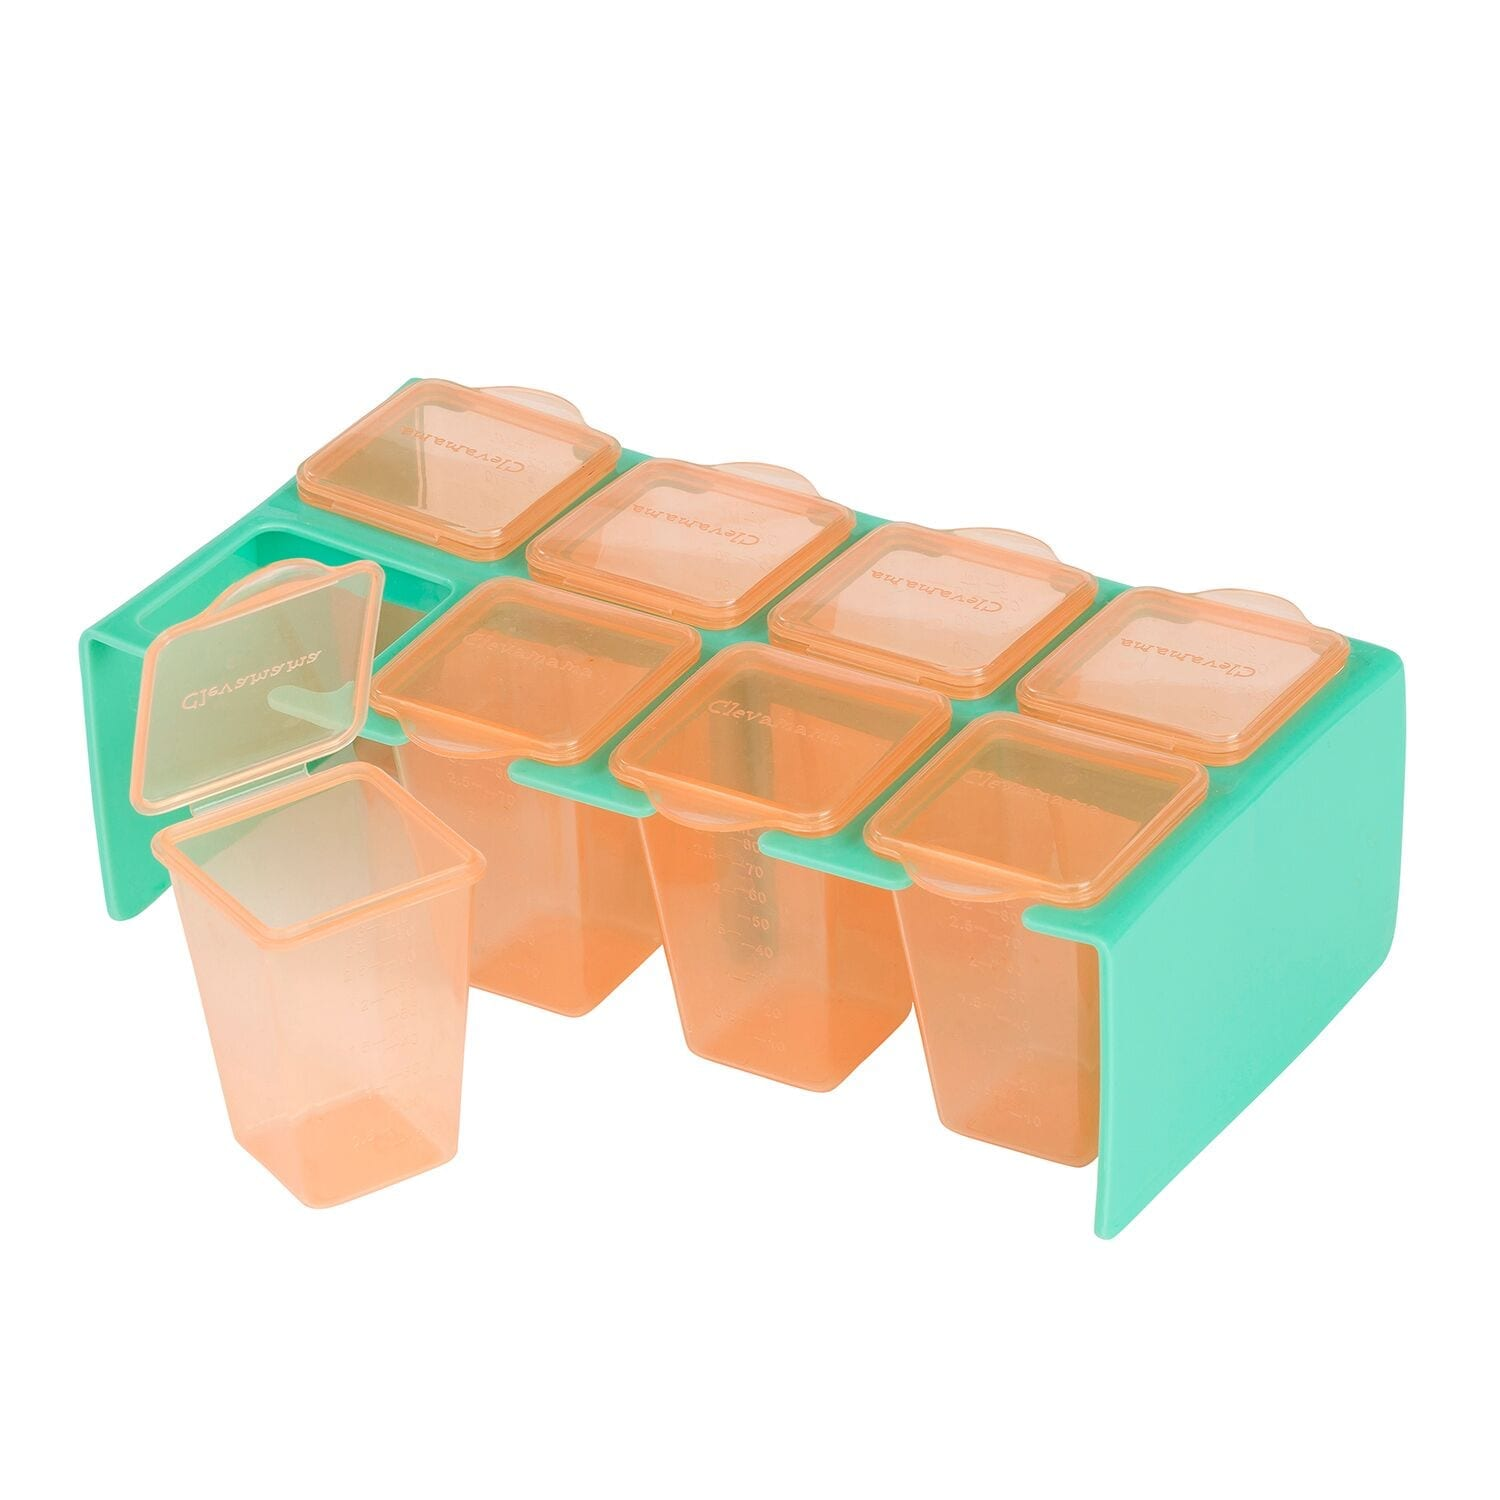 Clevaportions Freeze+storage product image